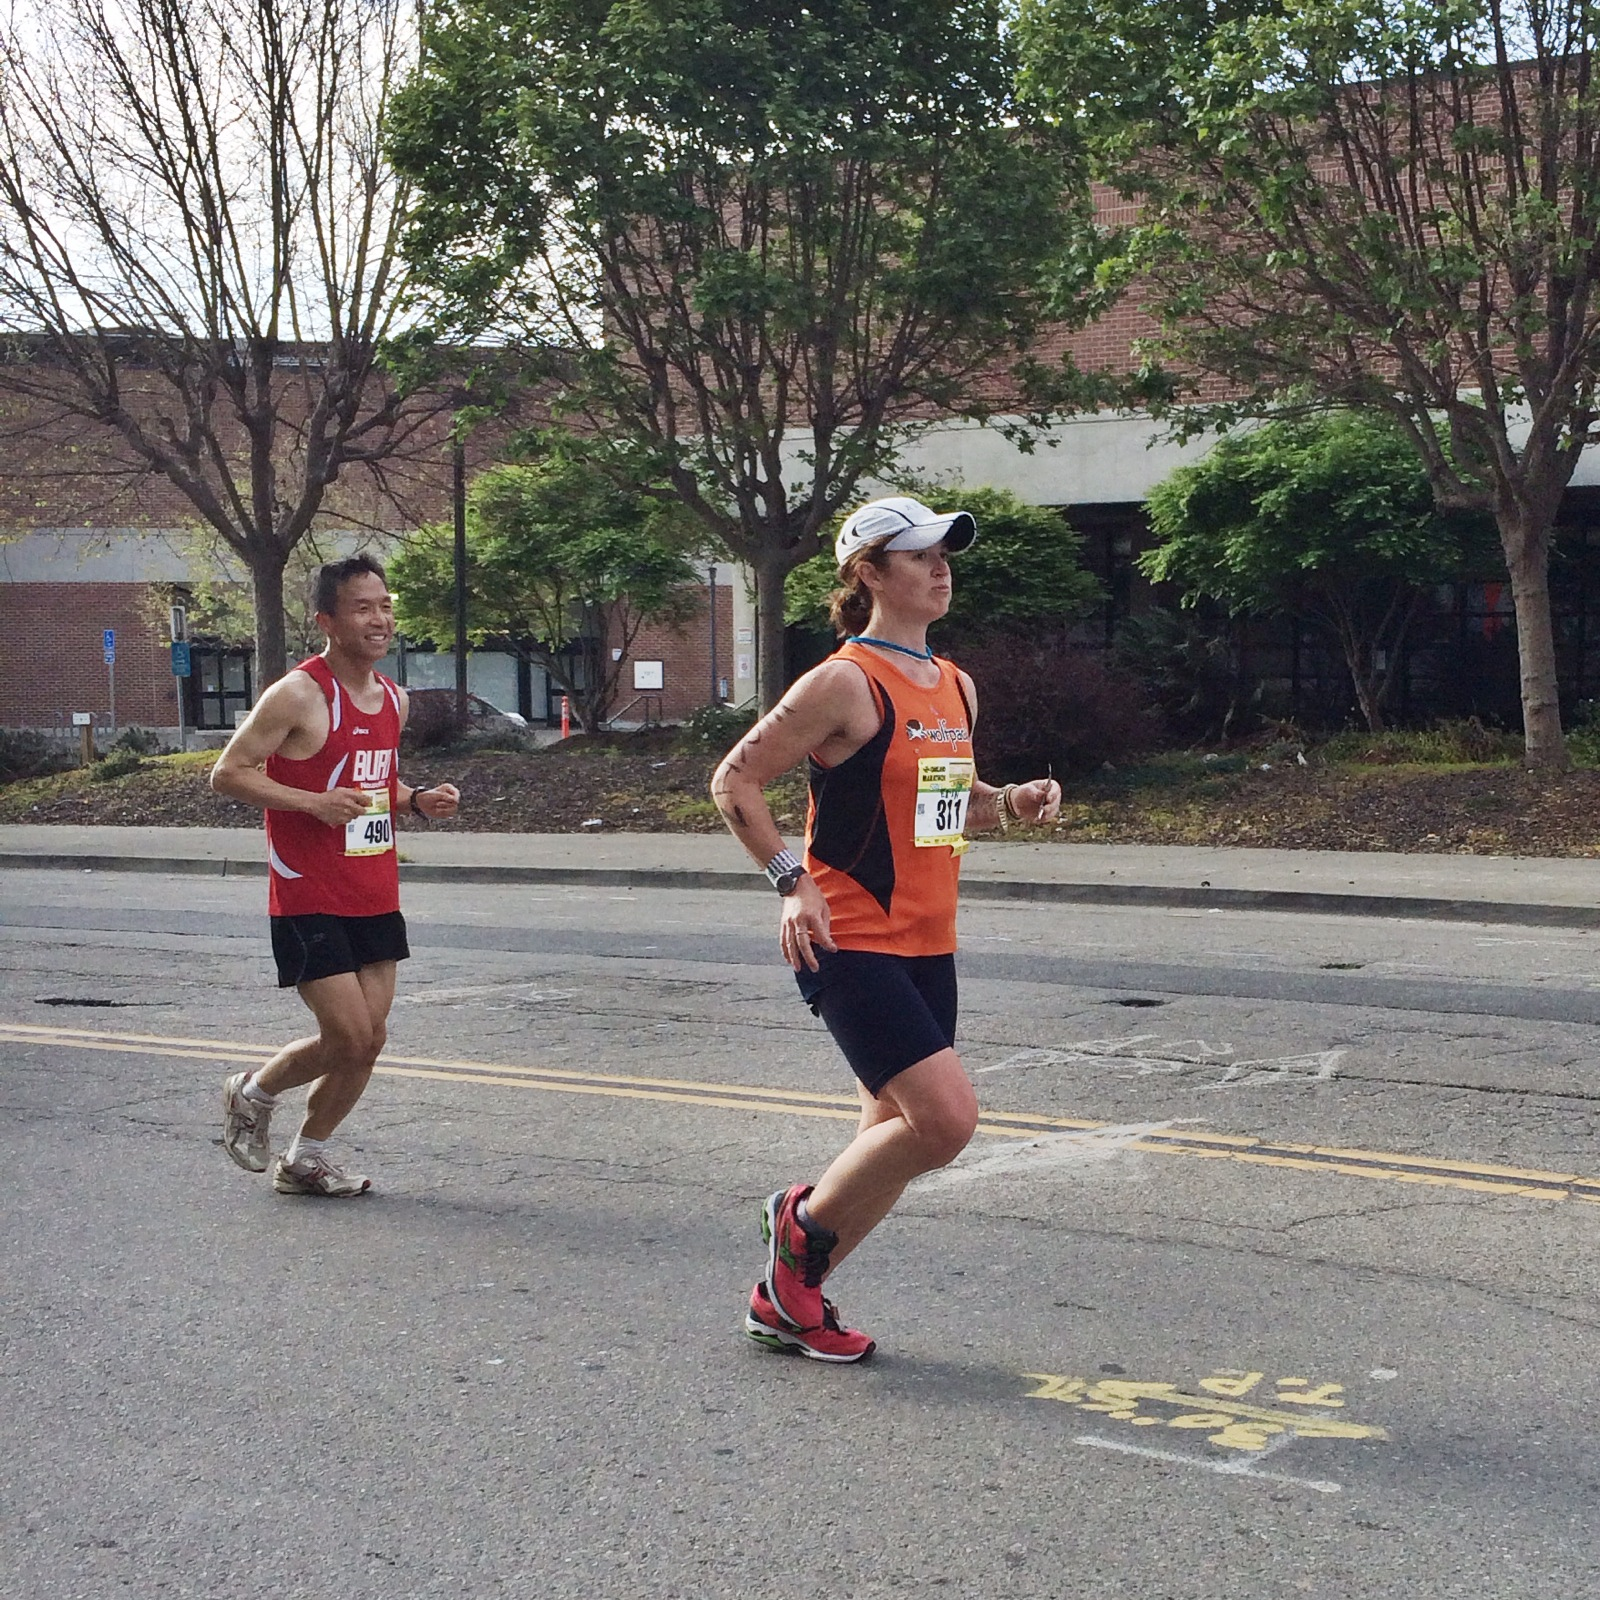 mid-run duck face; also, what I look like while eating oranges at mile 17+ of a marathon